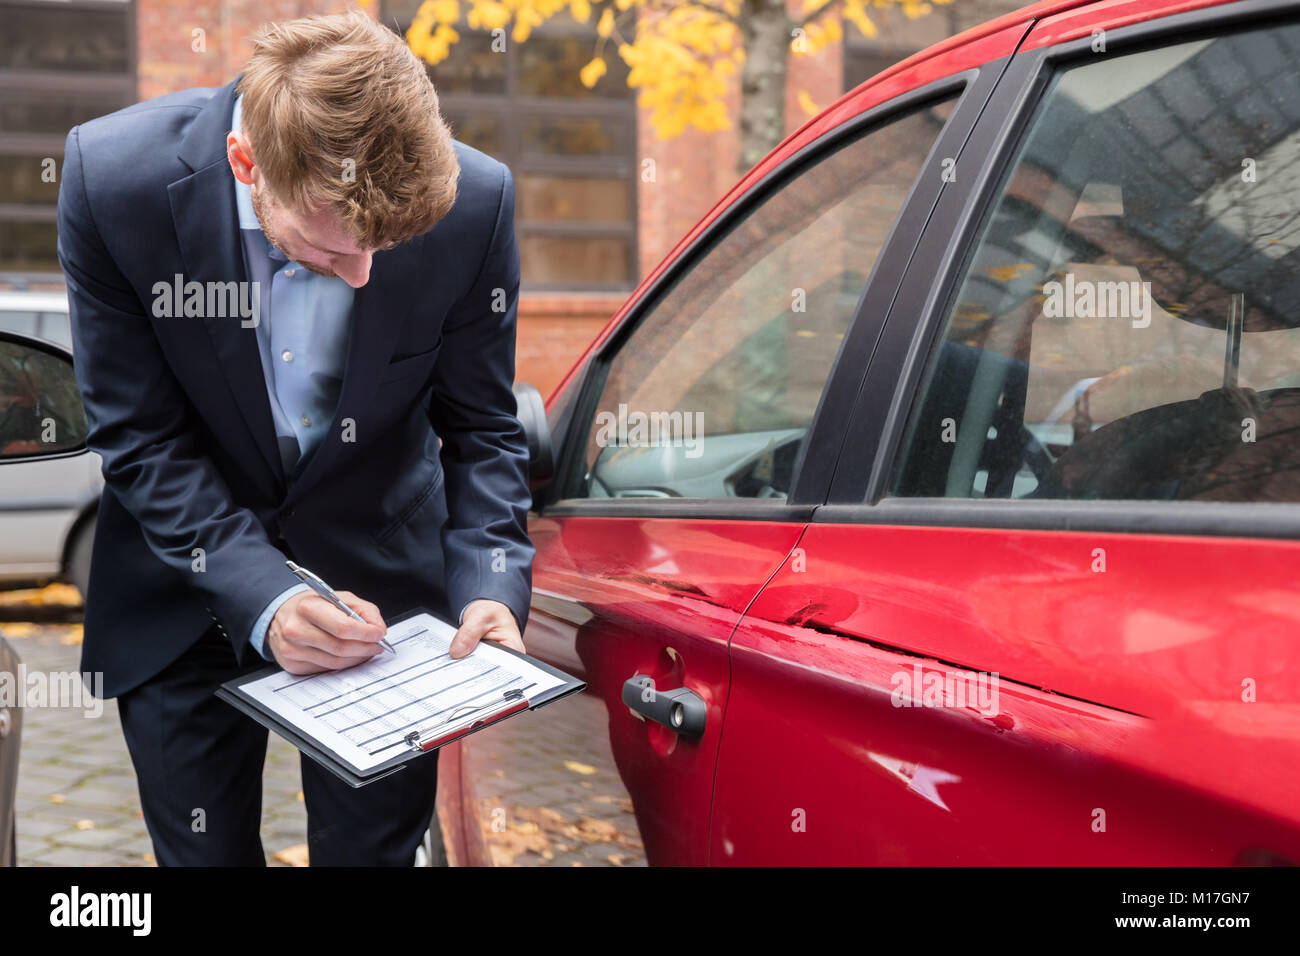 Insurance Agent Writing On Clipboard While Examining Car After Accident - Stock Image